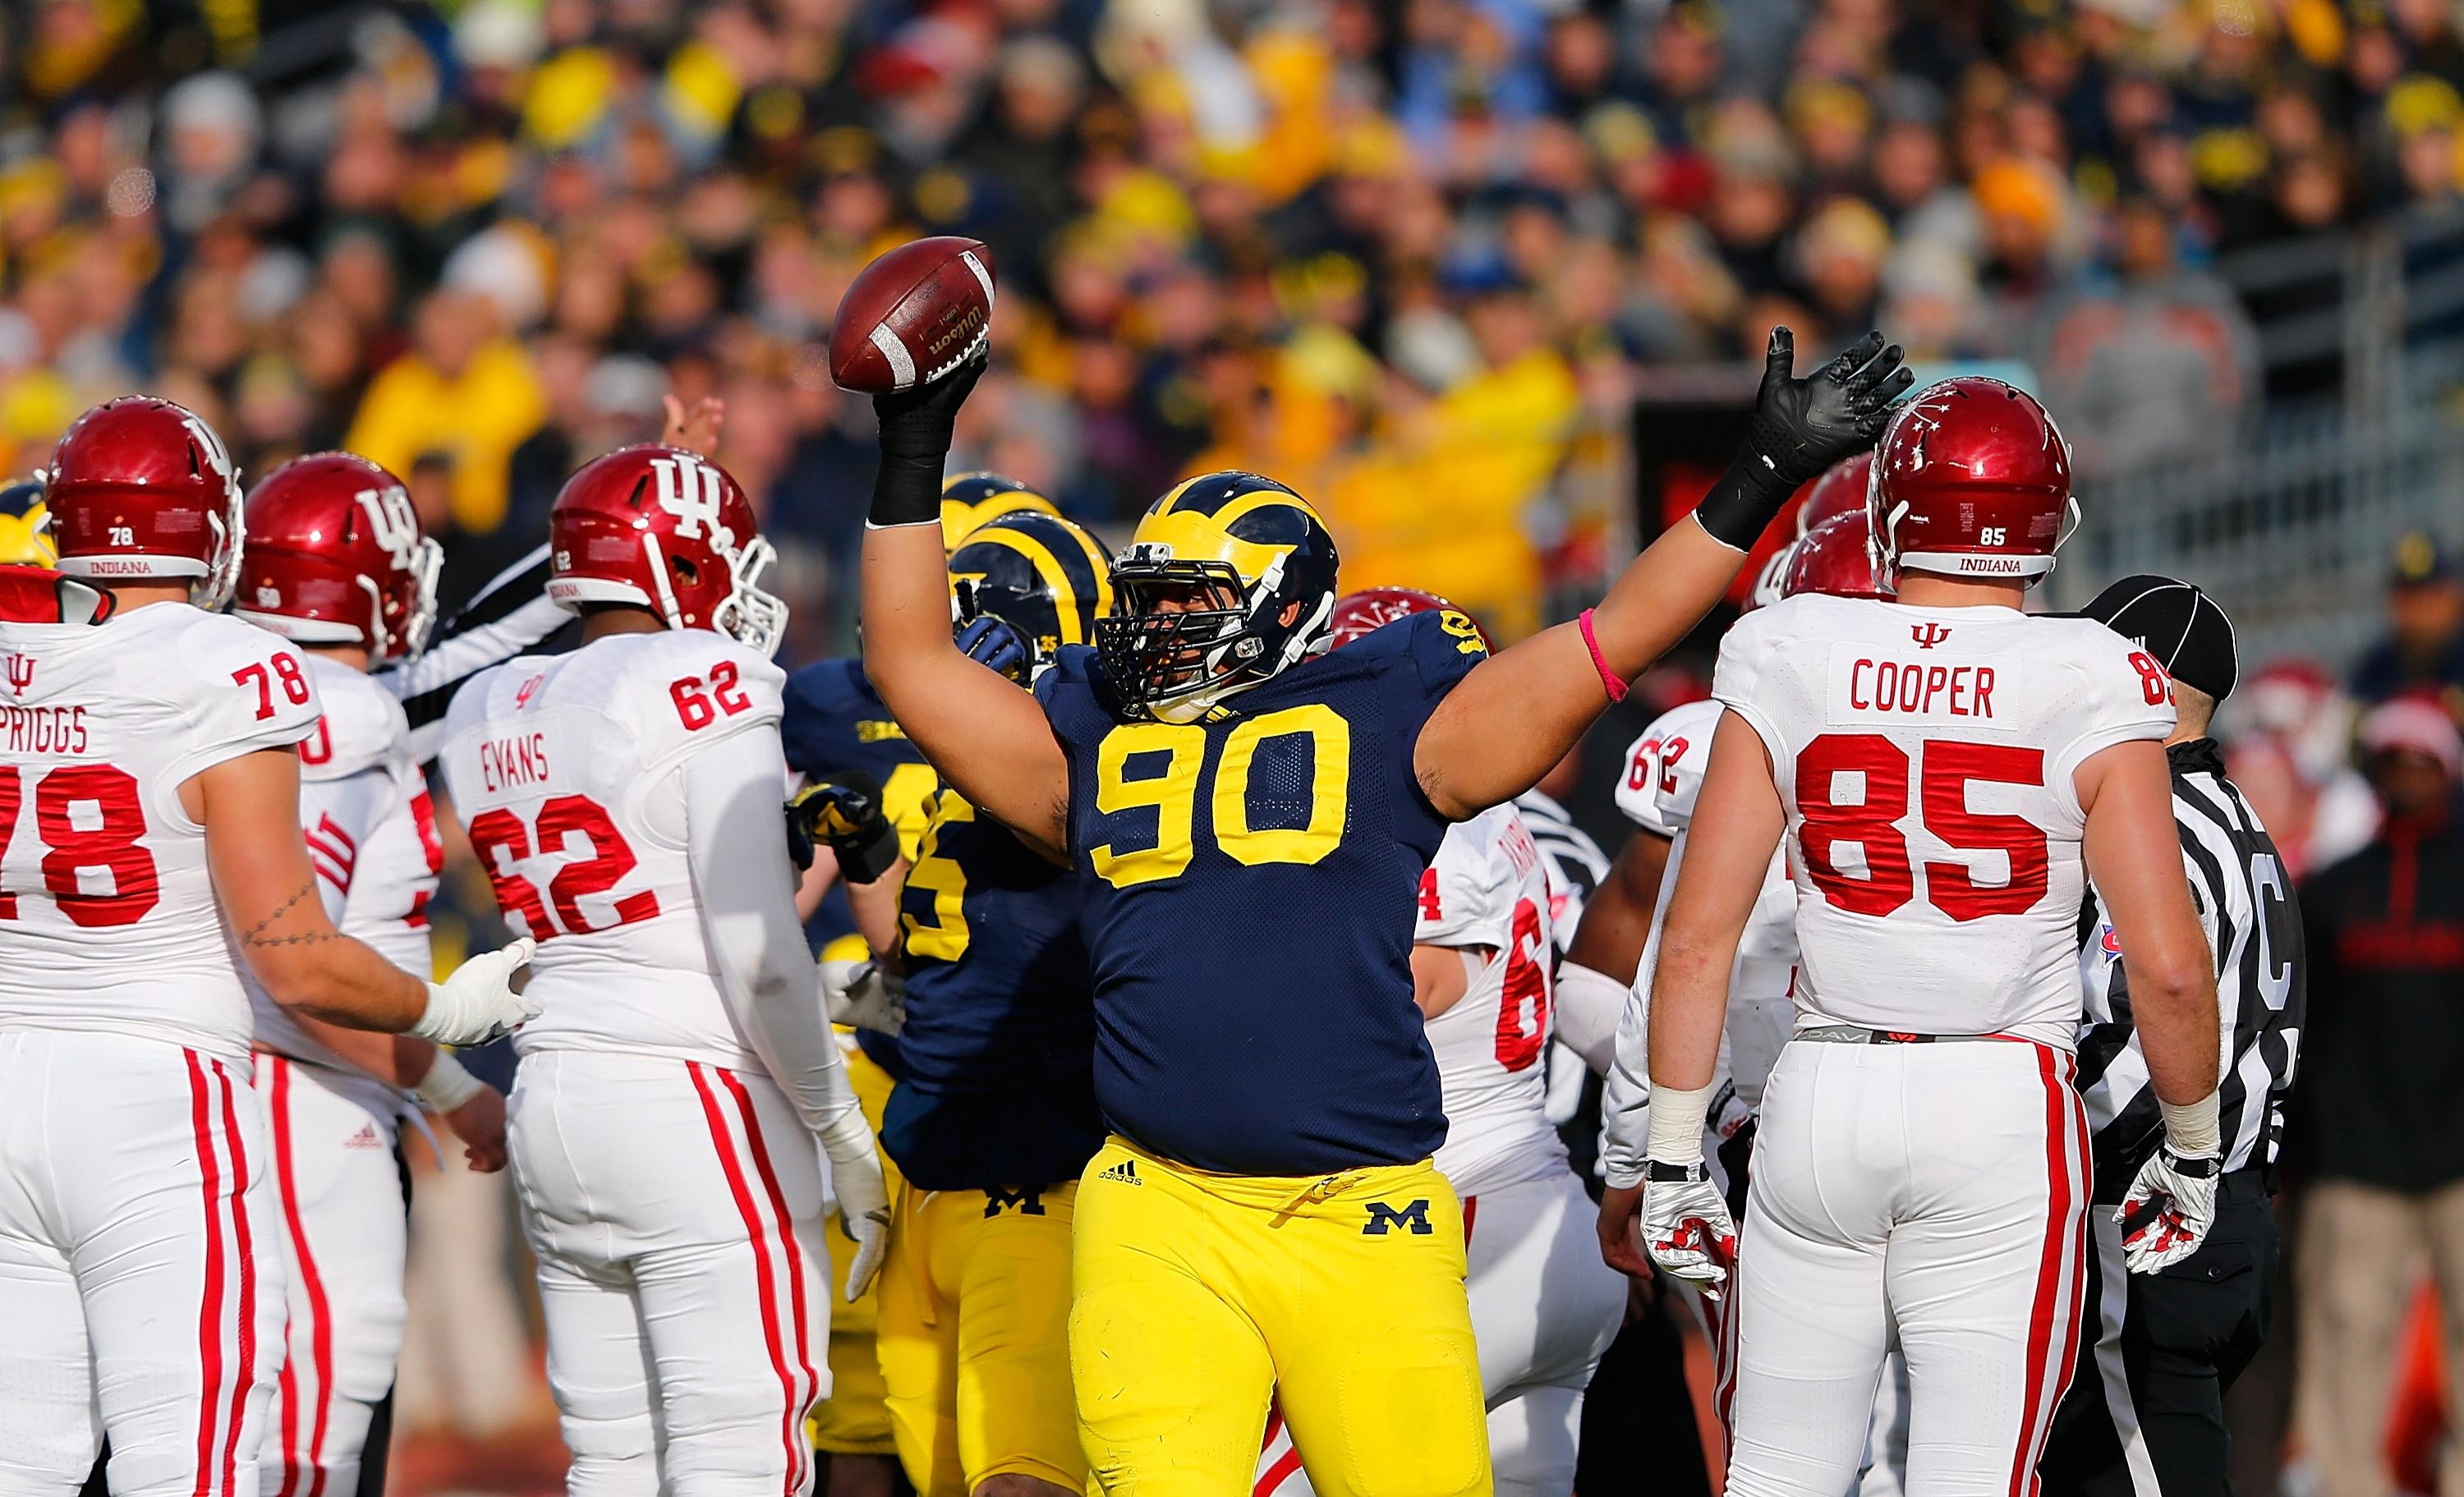 Michigan DT Bryan Mone likely out for the season